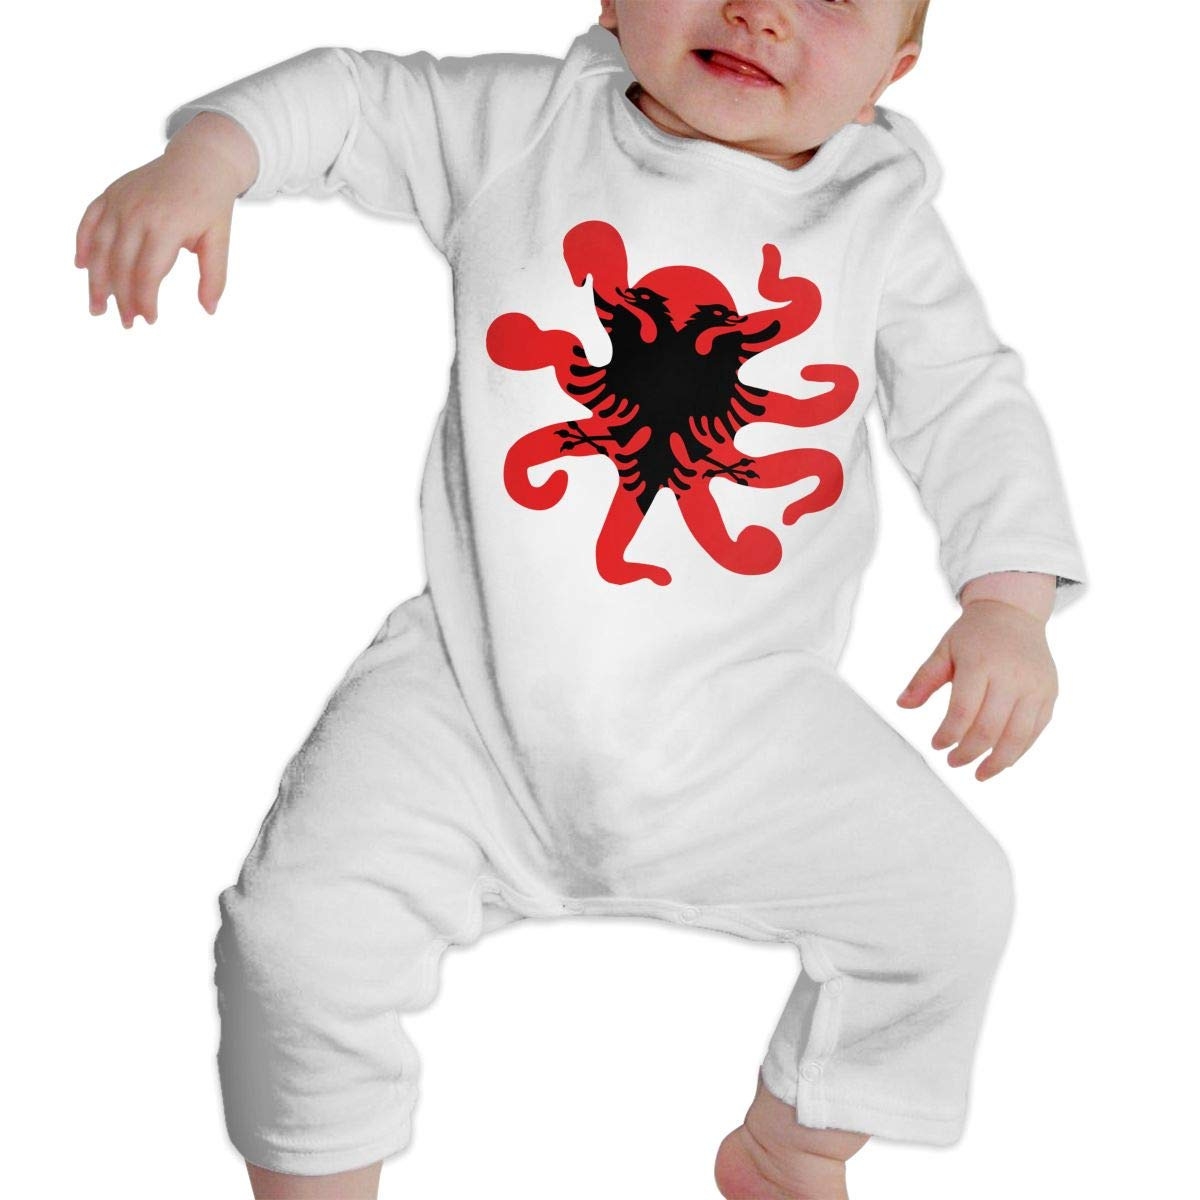 LBJQ8 Albanian Flag Octopus Shaped Newborn Kids Baby Boys Sleep and Play Pajamas Sleeper